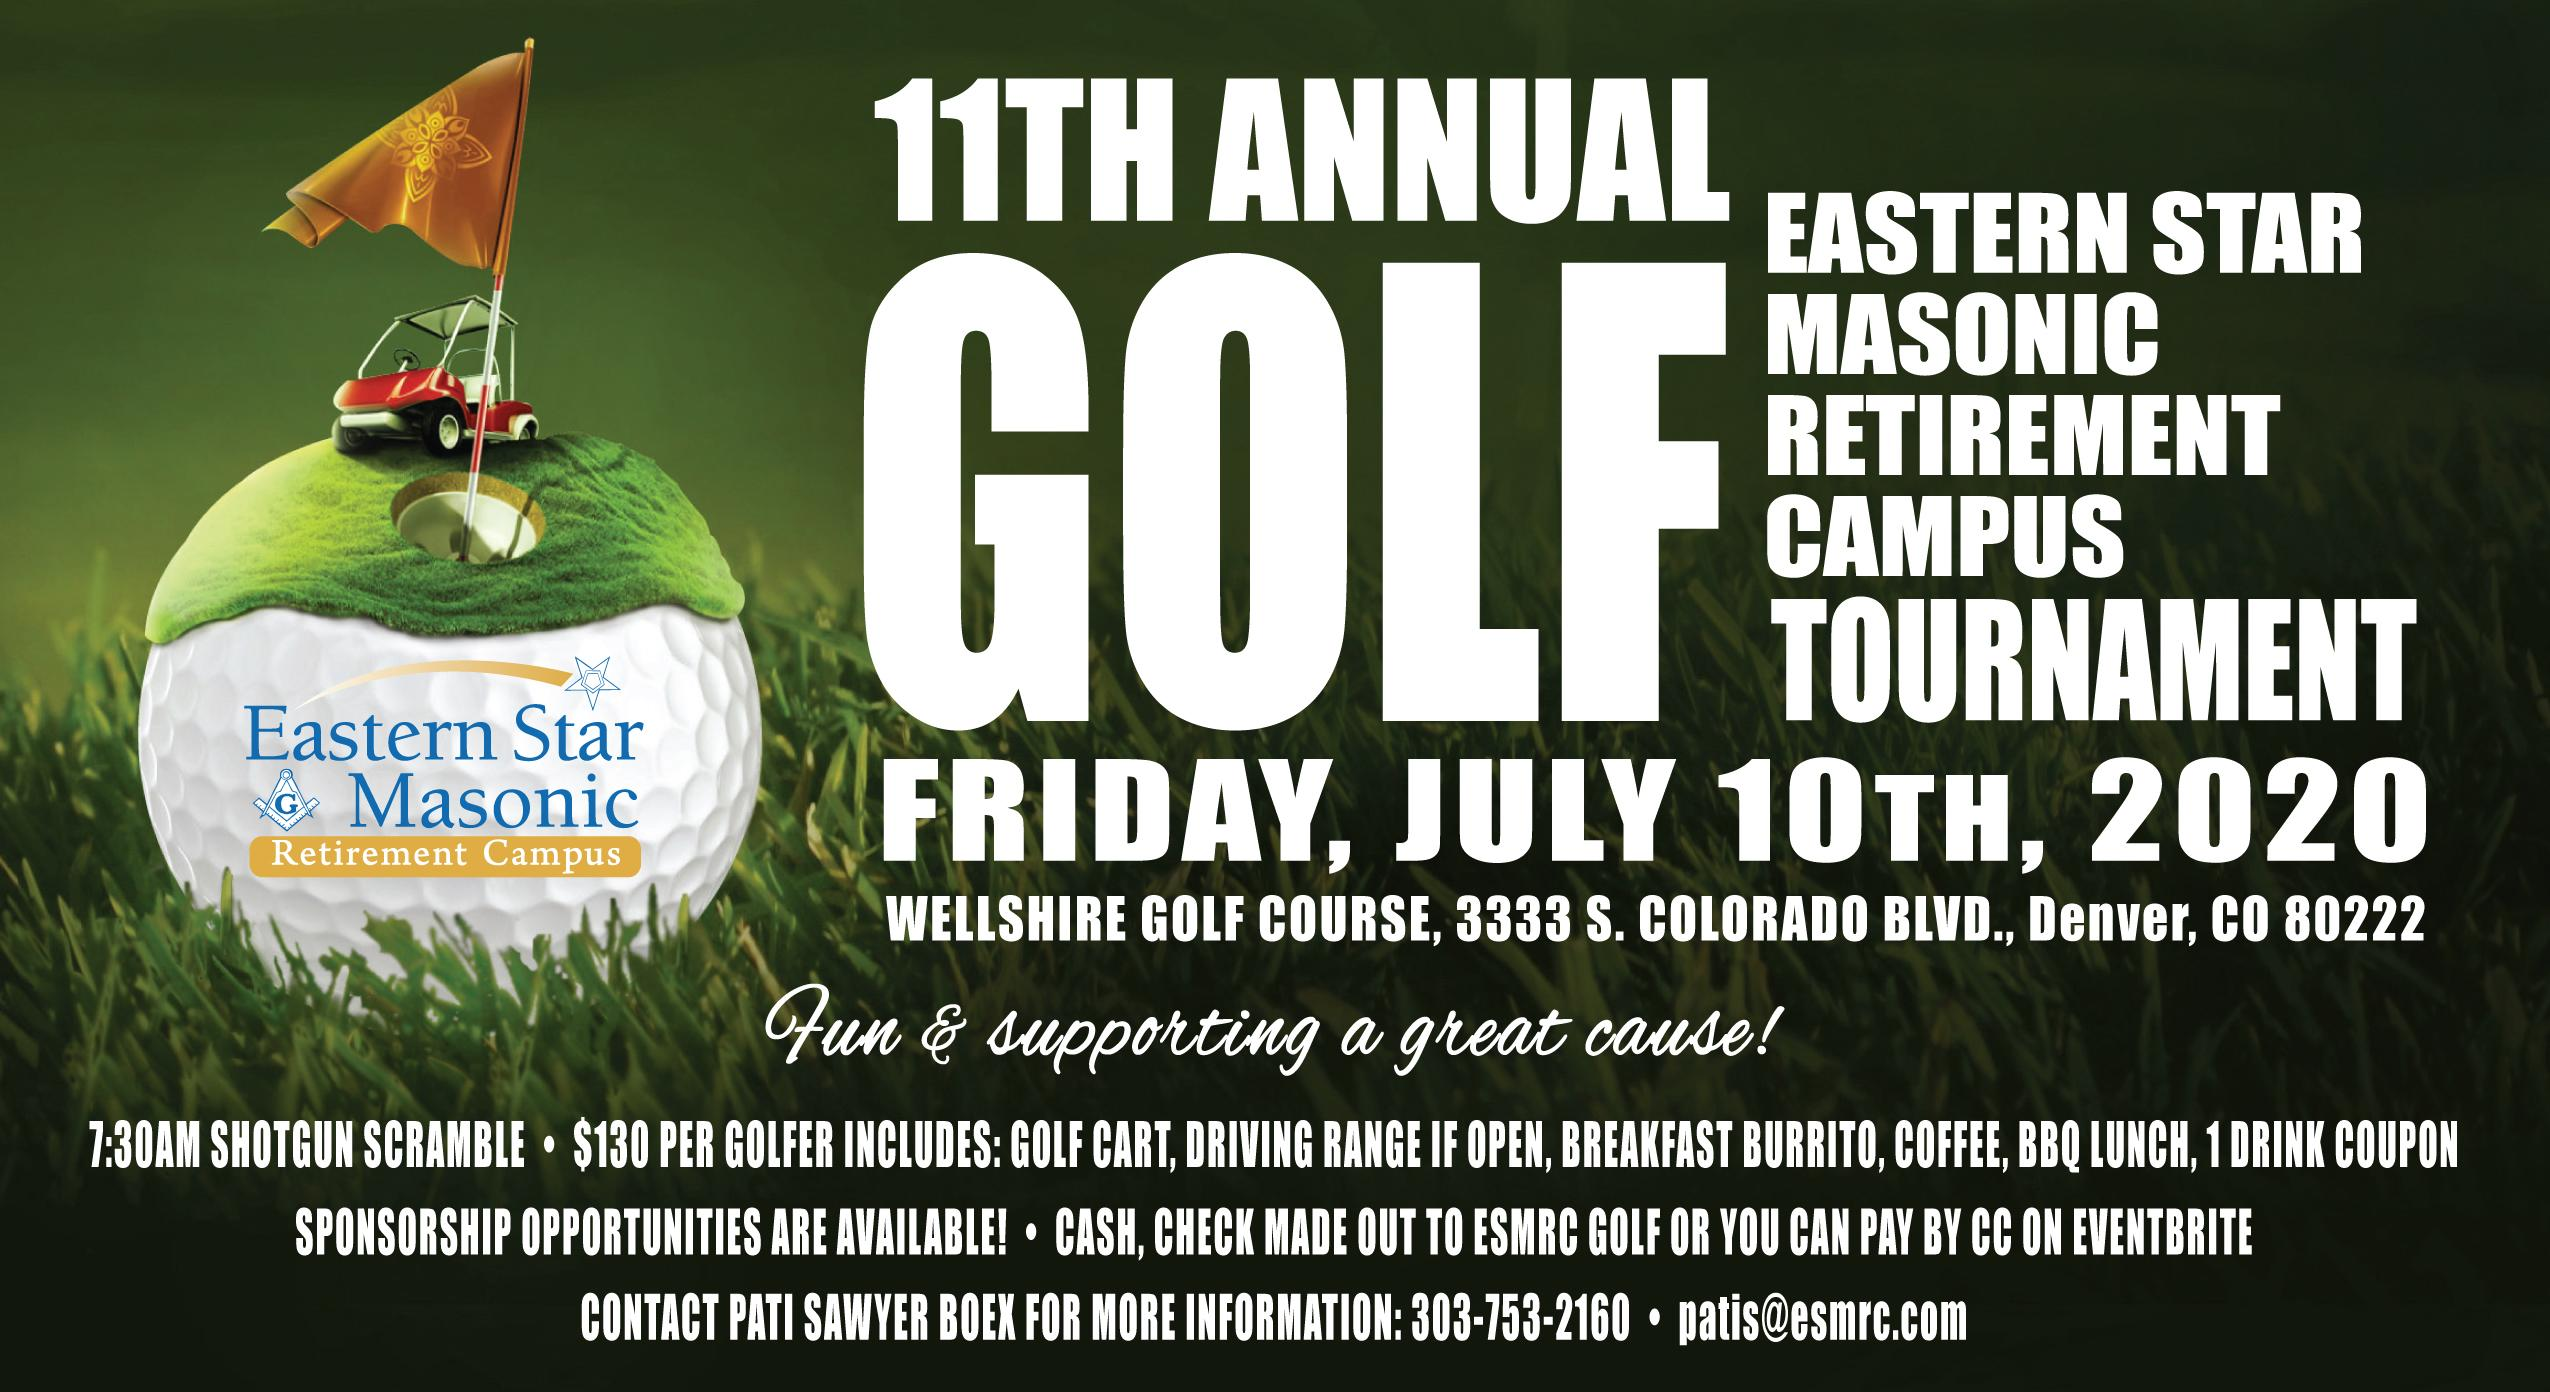 11th Annual Eastern Star Masonic Retirement Campus golf Tournament